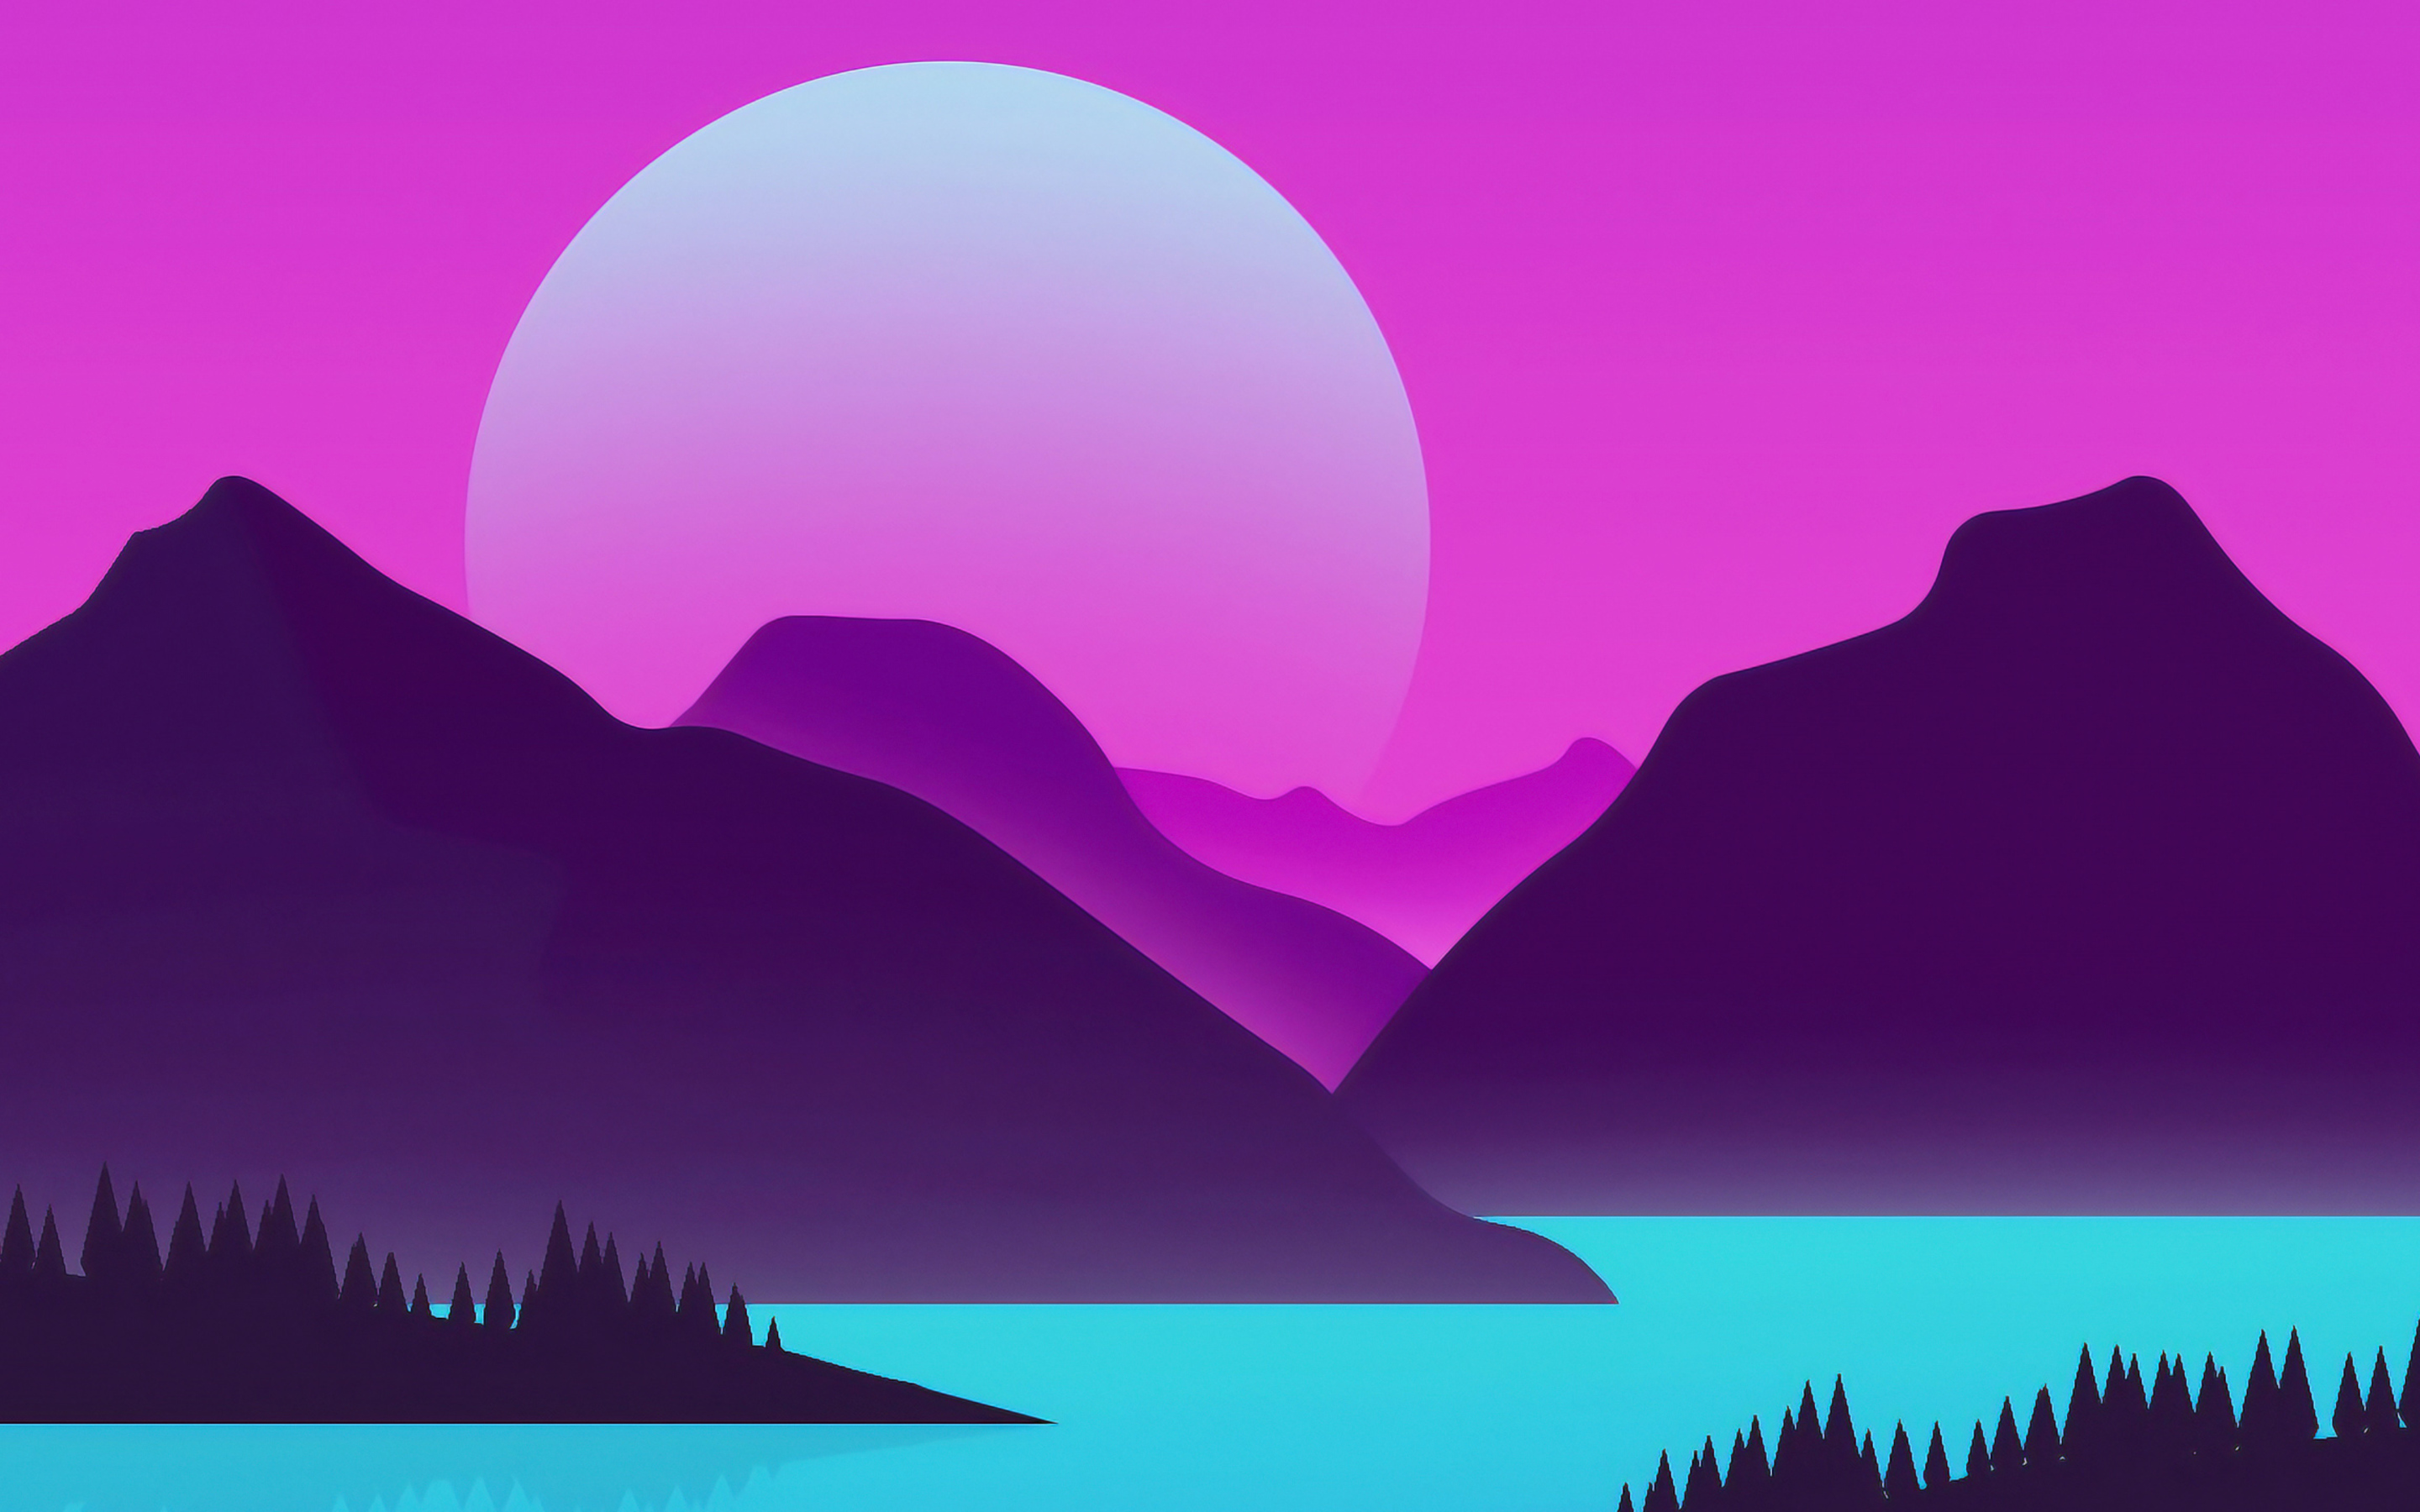 Abstract Summer Landscape, Mountains, Lake, Abstract - 4k Aesthetic Wallpapers Iphone X - HD Wallpaper